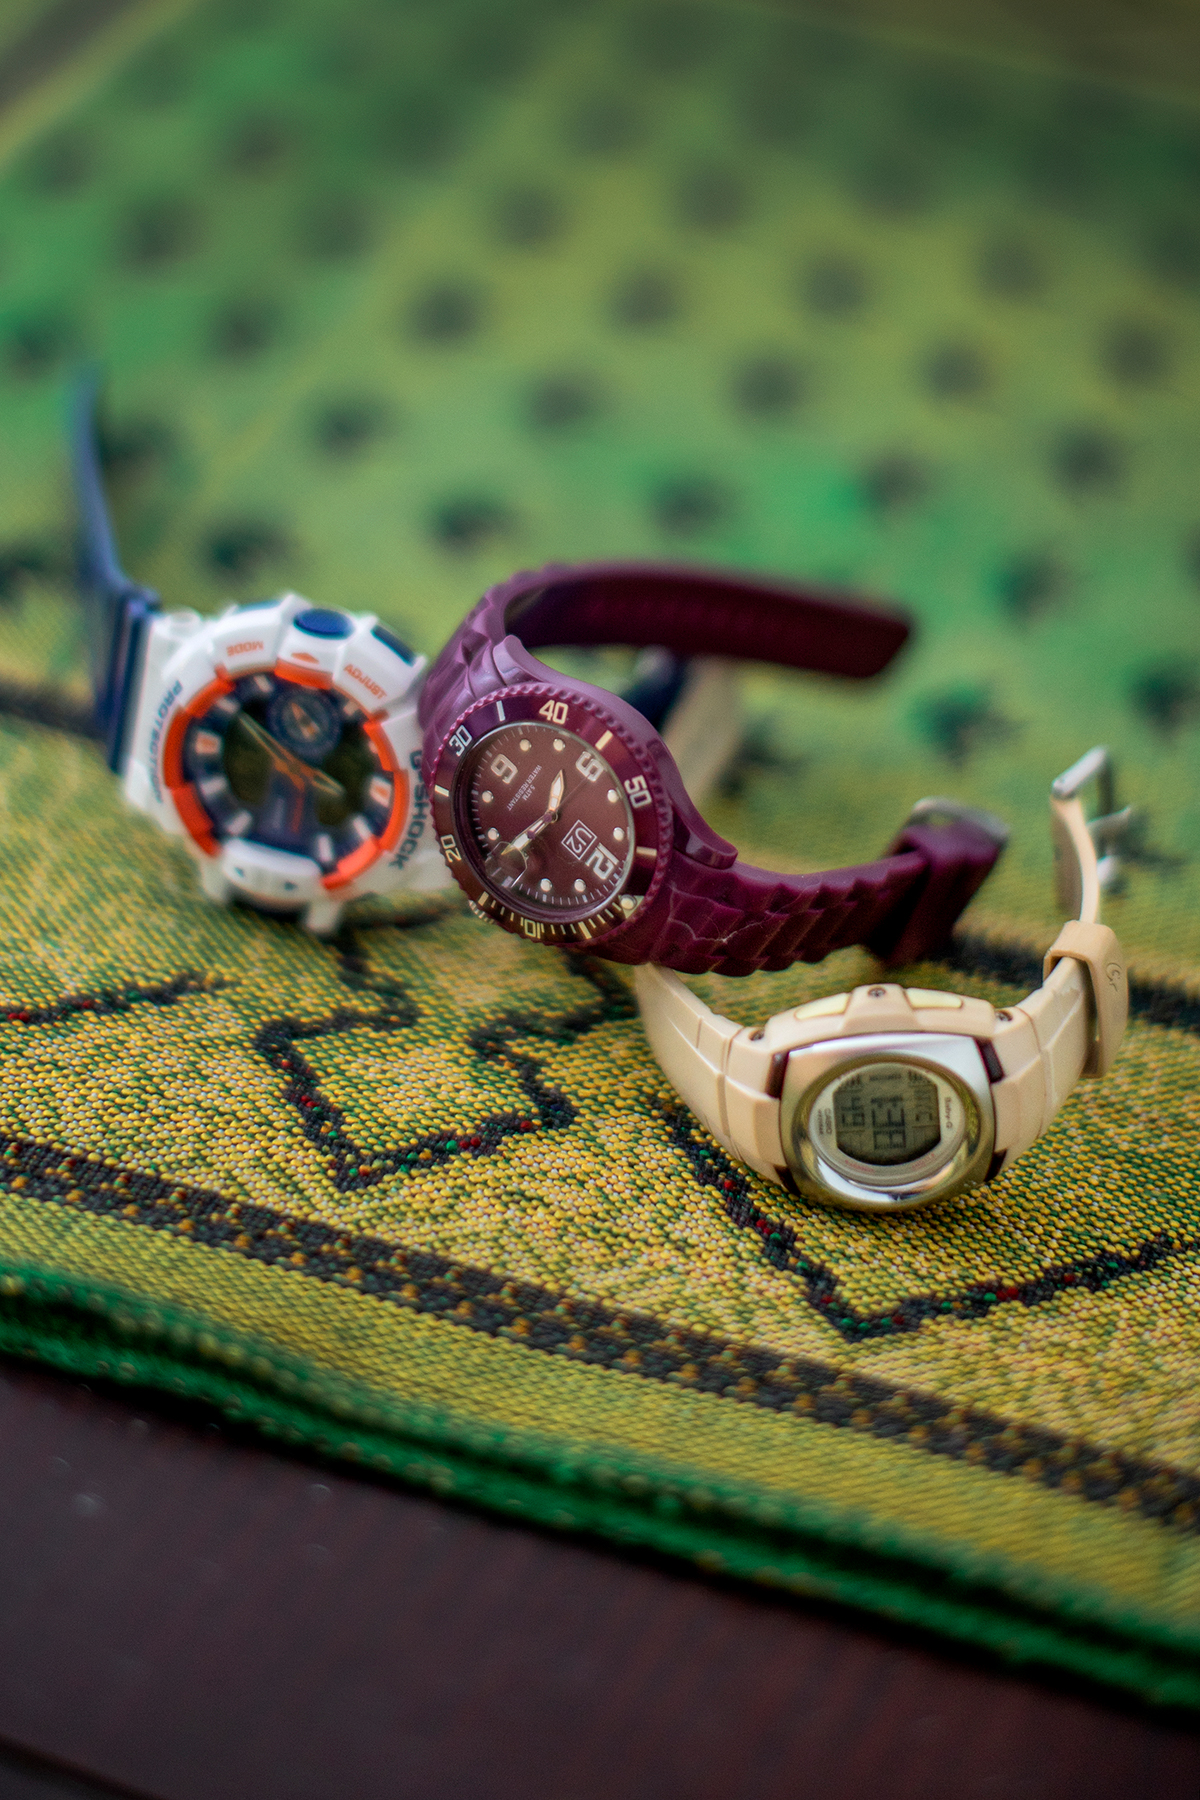 Collection of watches belonging to University of Toronto student Farzana Azmy